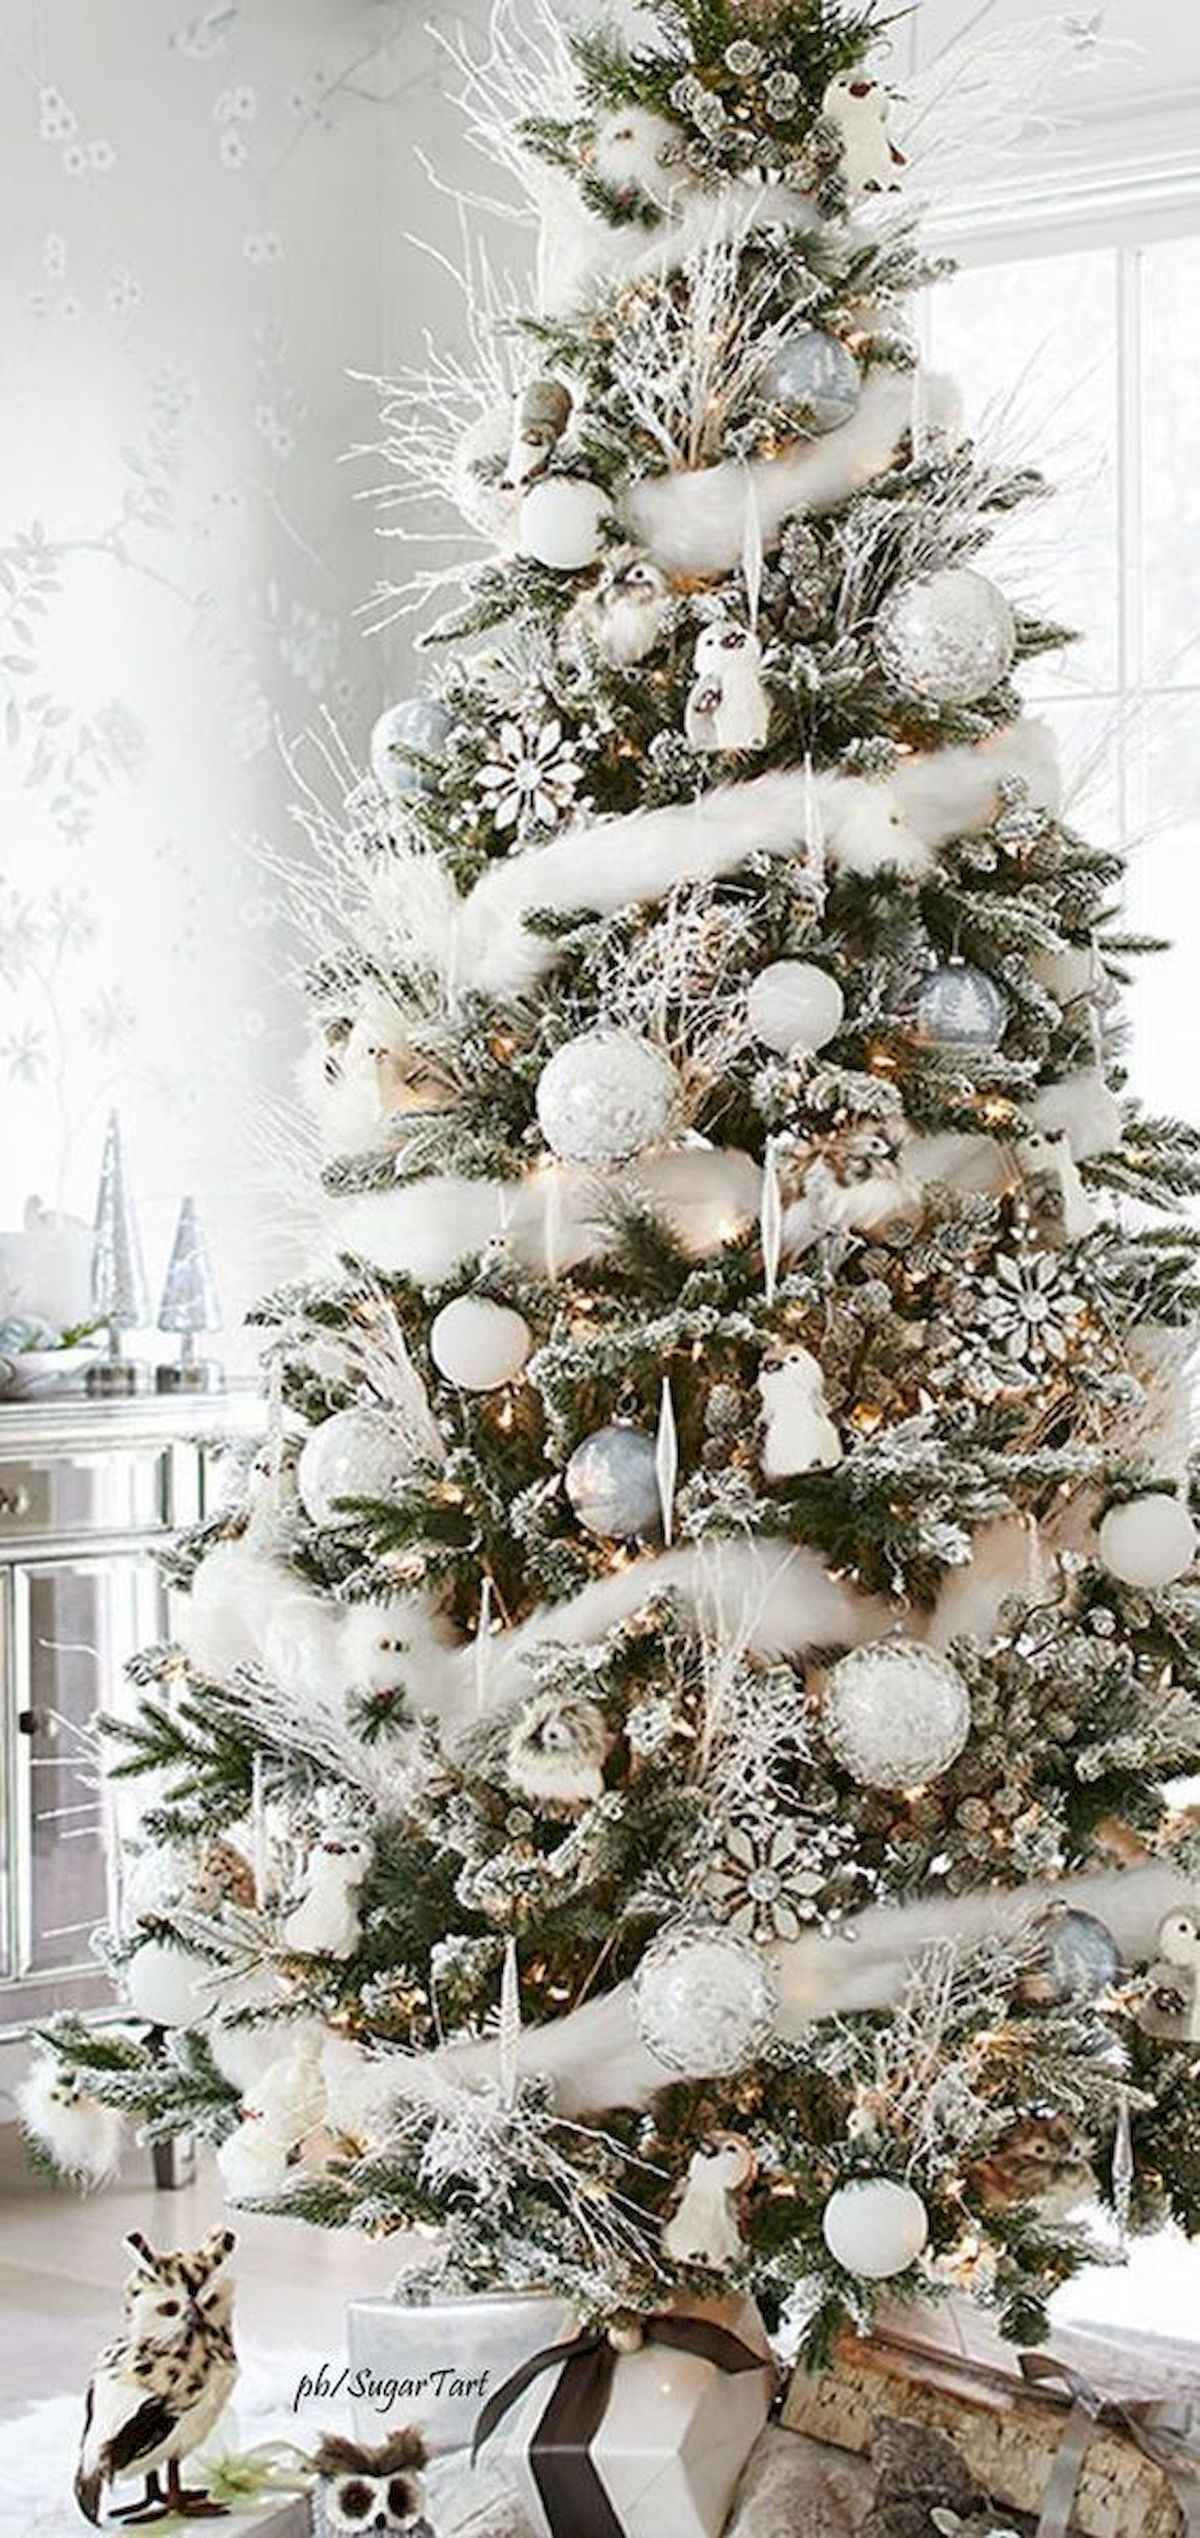 60 awesome christmas tree decorations ideas (18)